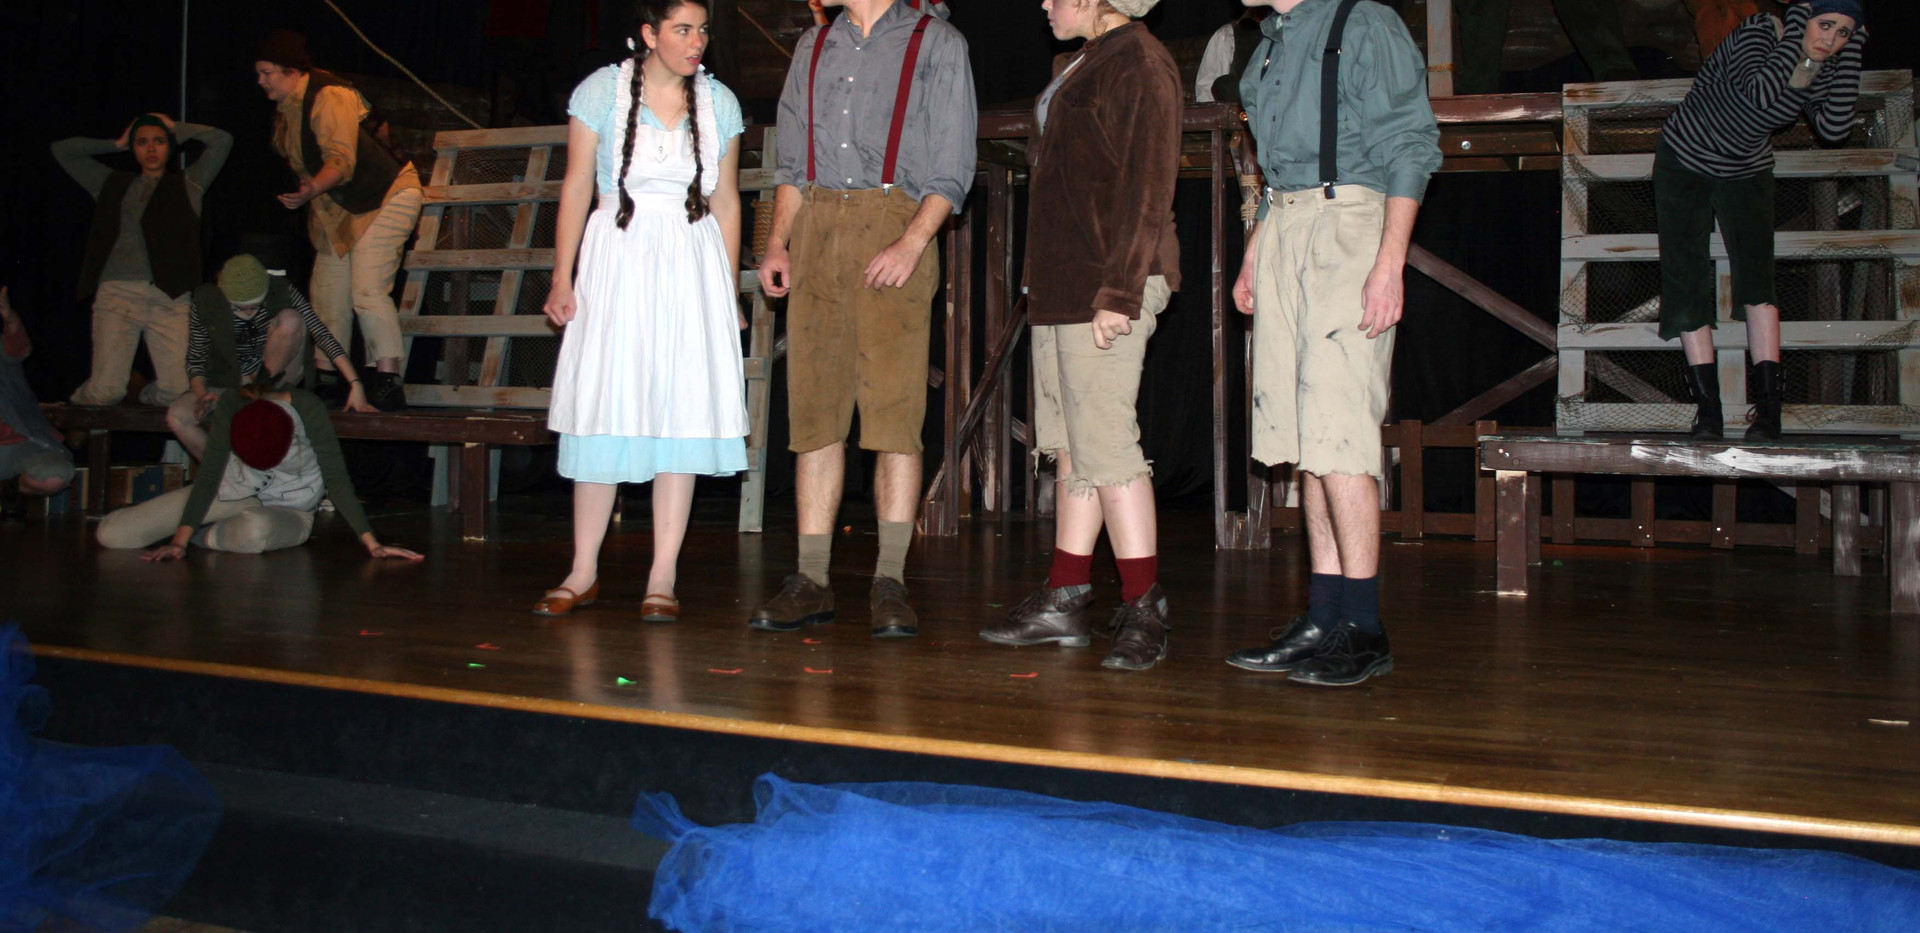 Peter and the Starcatcher - Molly, Peter, Ted and Prentiss